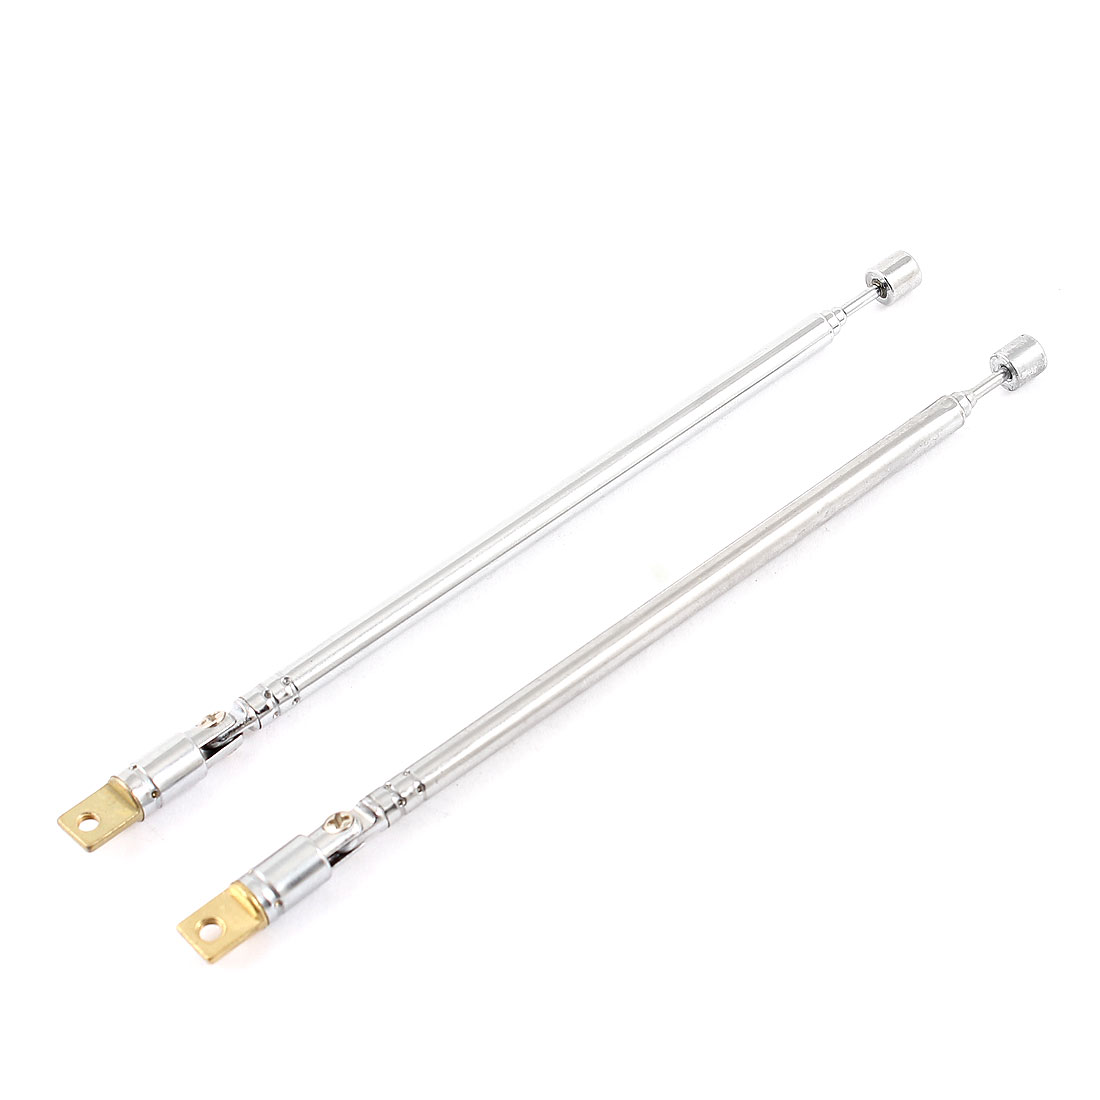 2 Pcs Rotated 180 Degree 4 Sections 37cm Long Telescopic Antenna